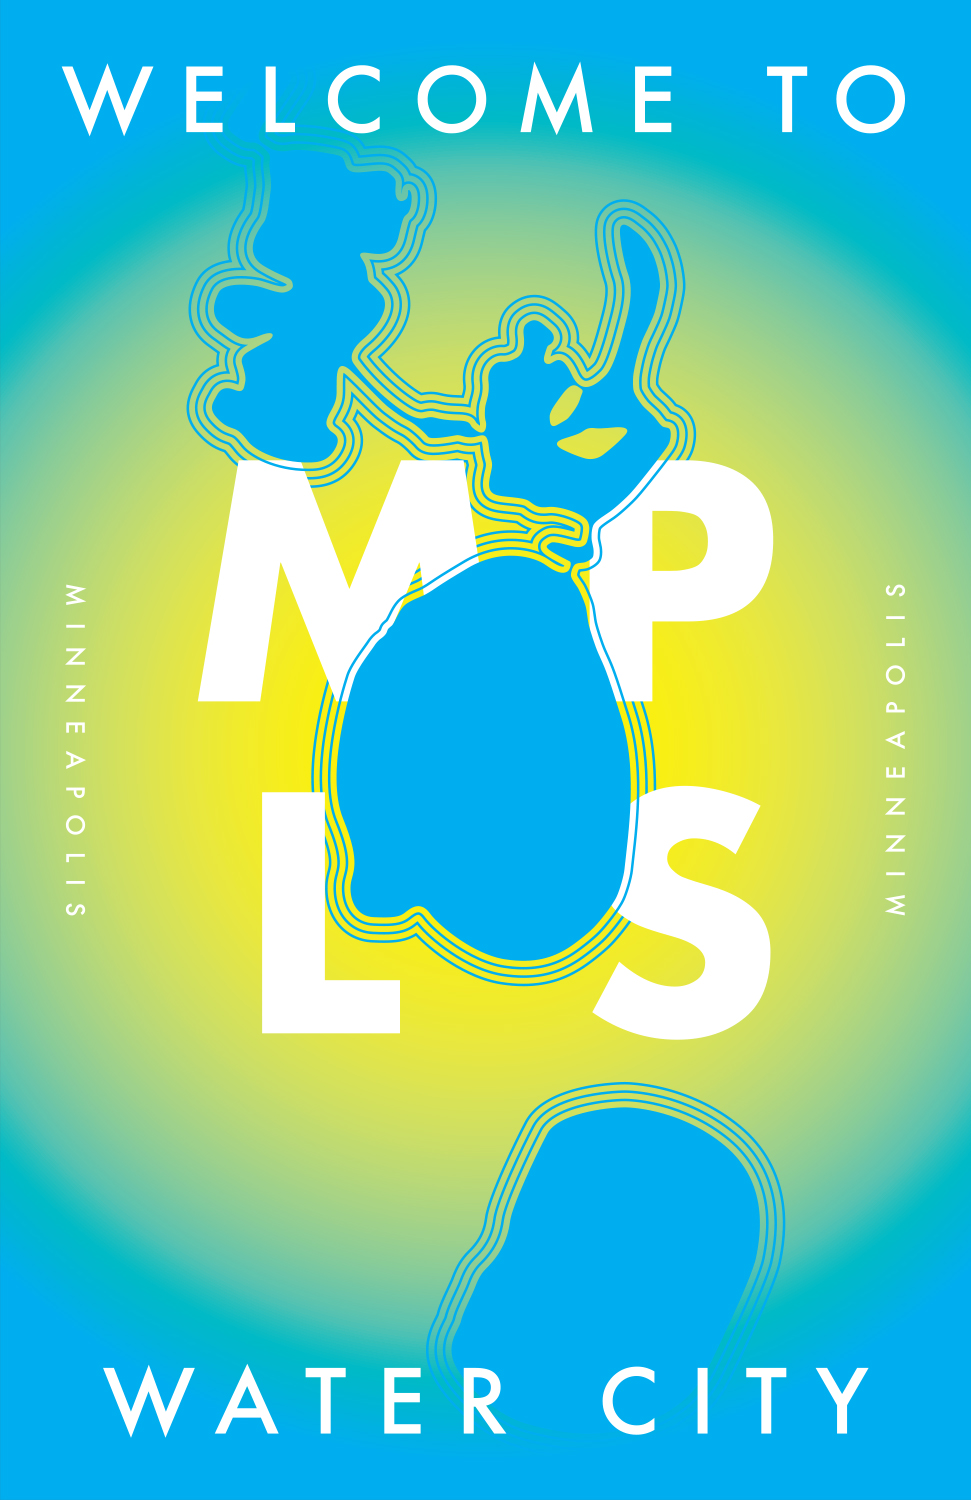 Minneapolis Travel Poster (2013)